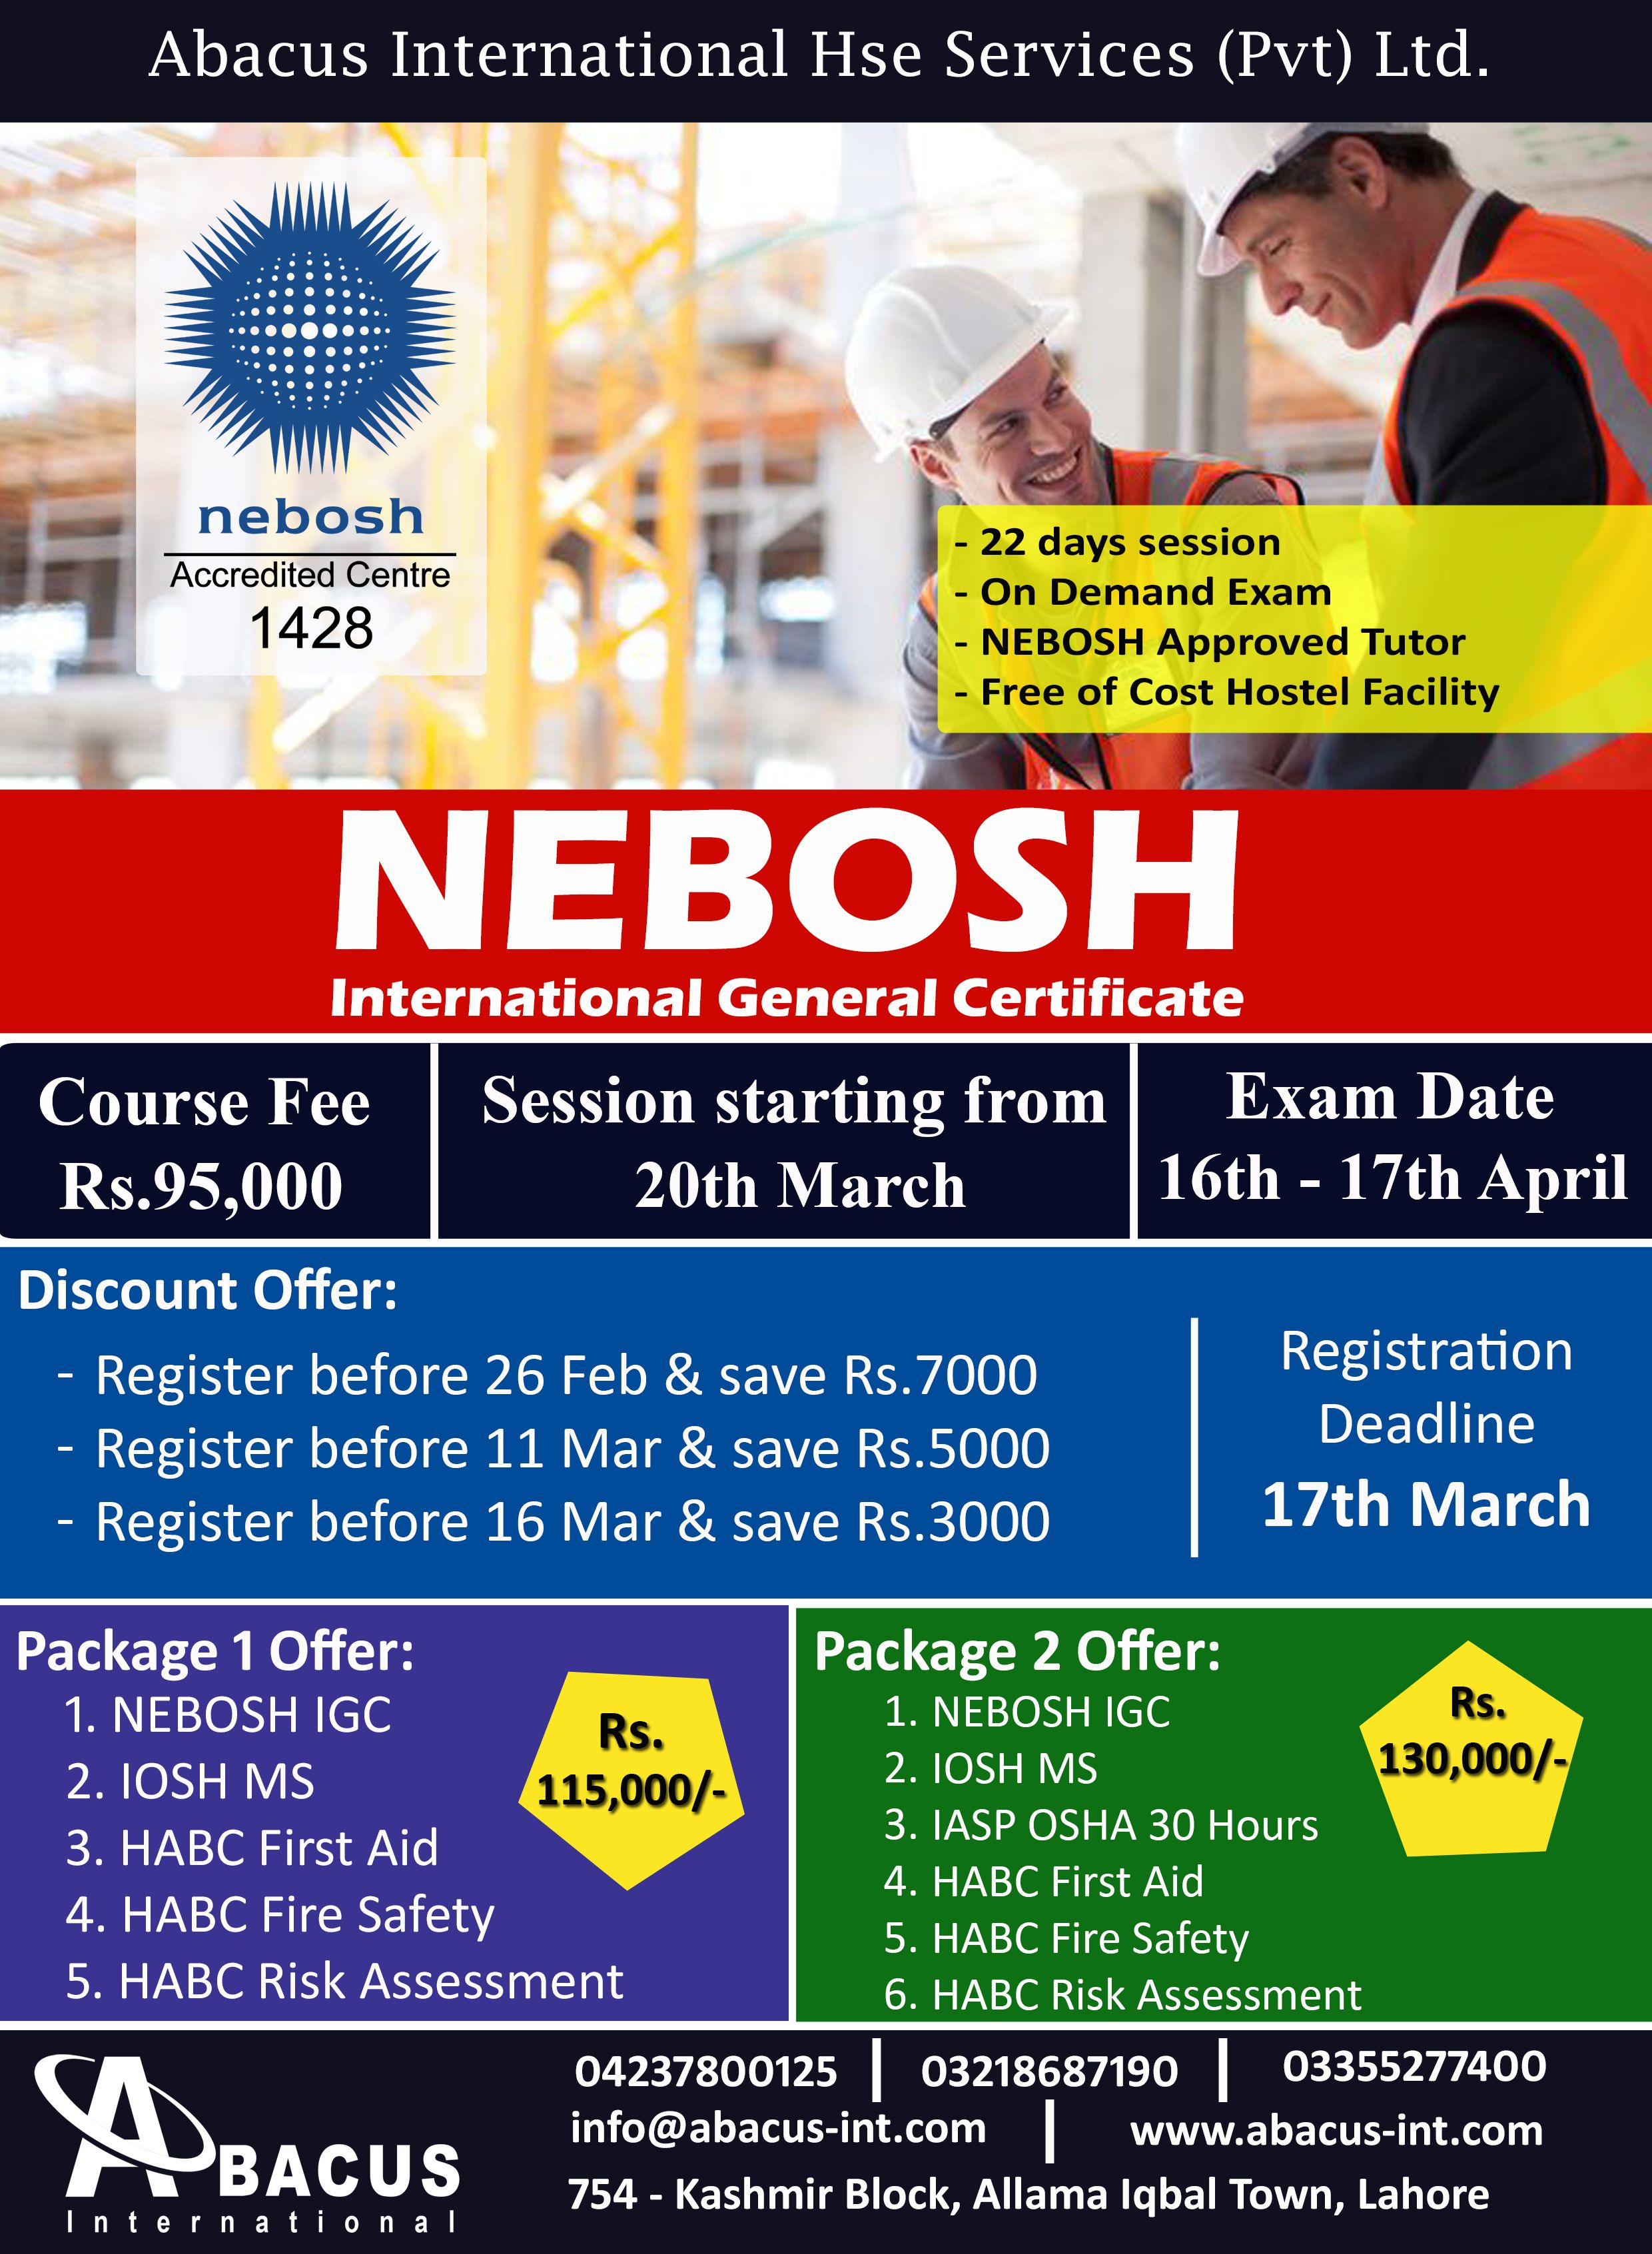 NEBOSH qualified from Pakistan's No.1 NEBOSH